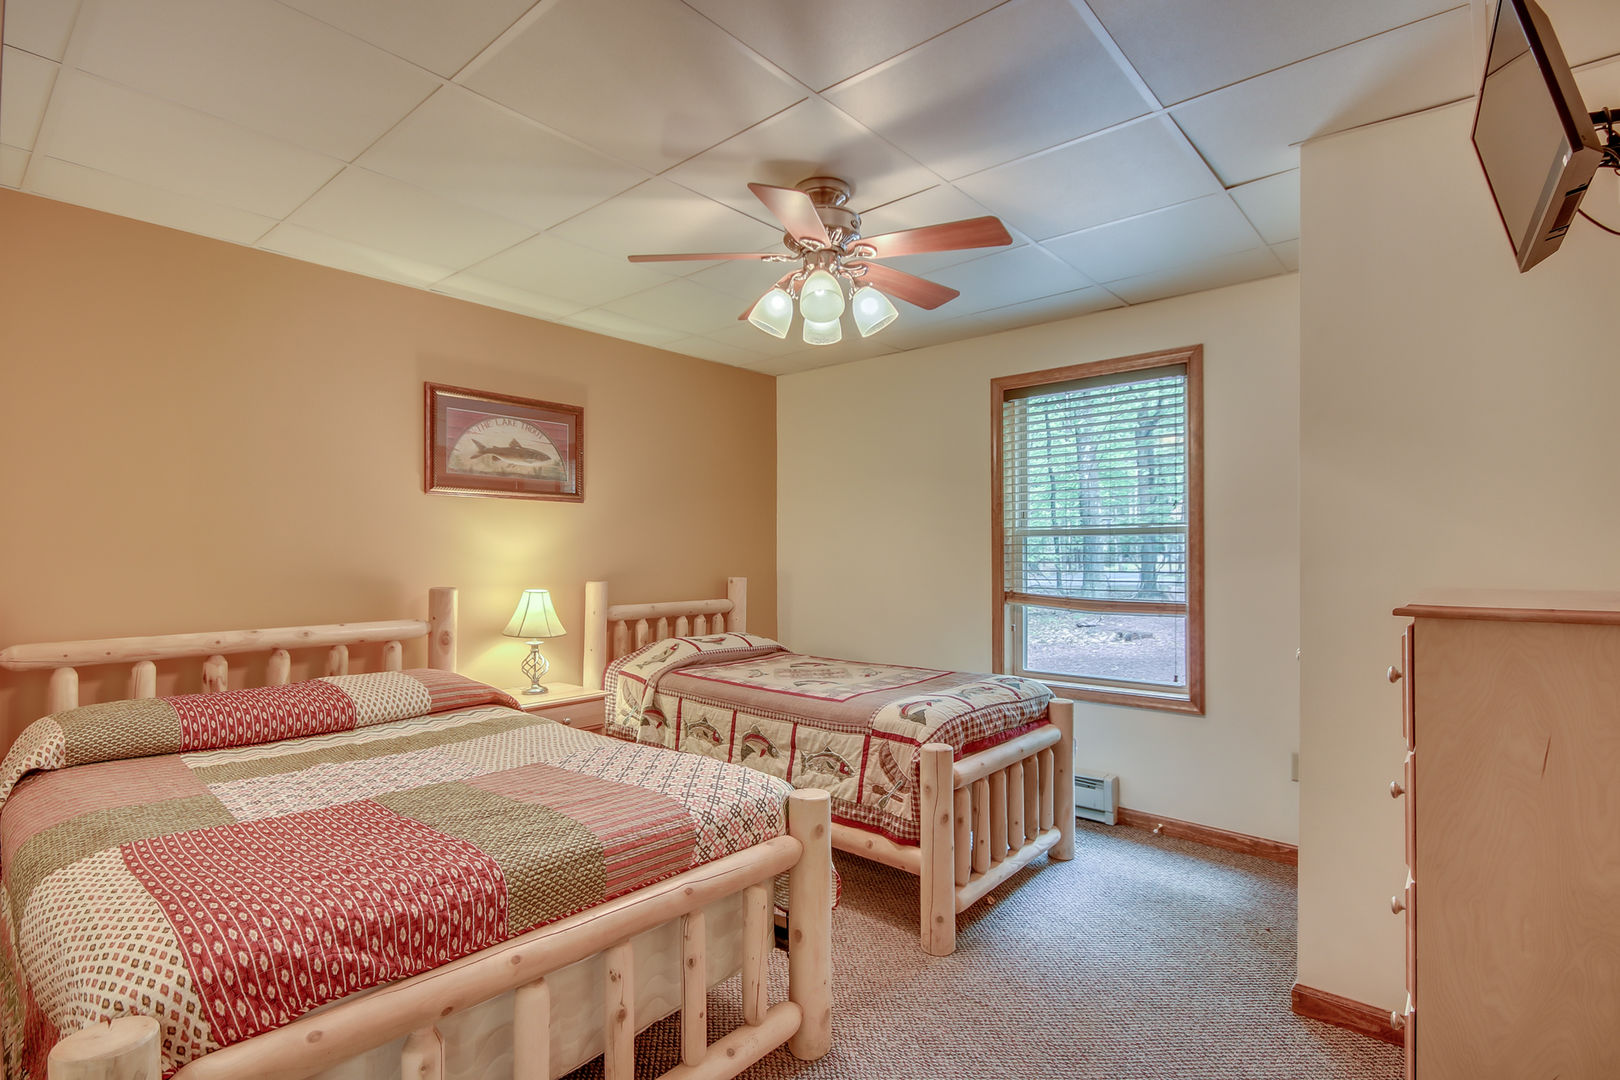 Two Beds, One Dresser, and TV in One of Our Bedrooms.